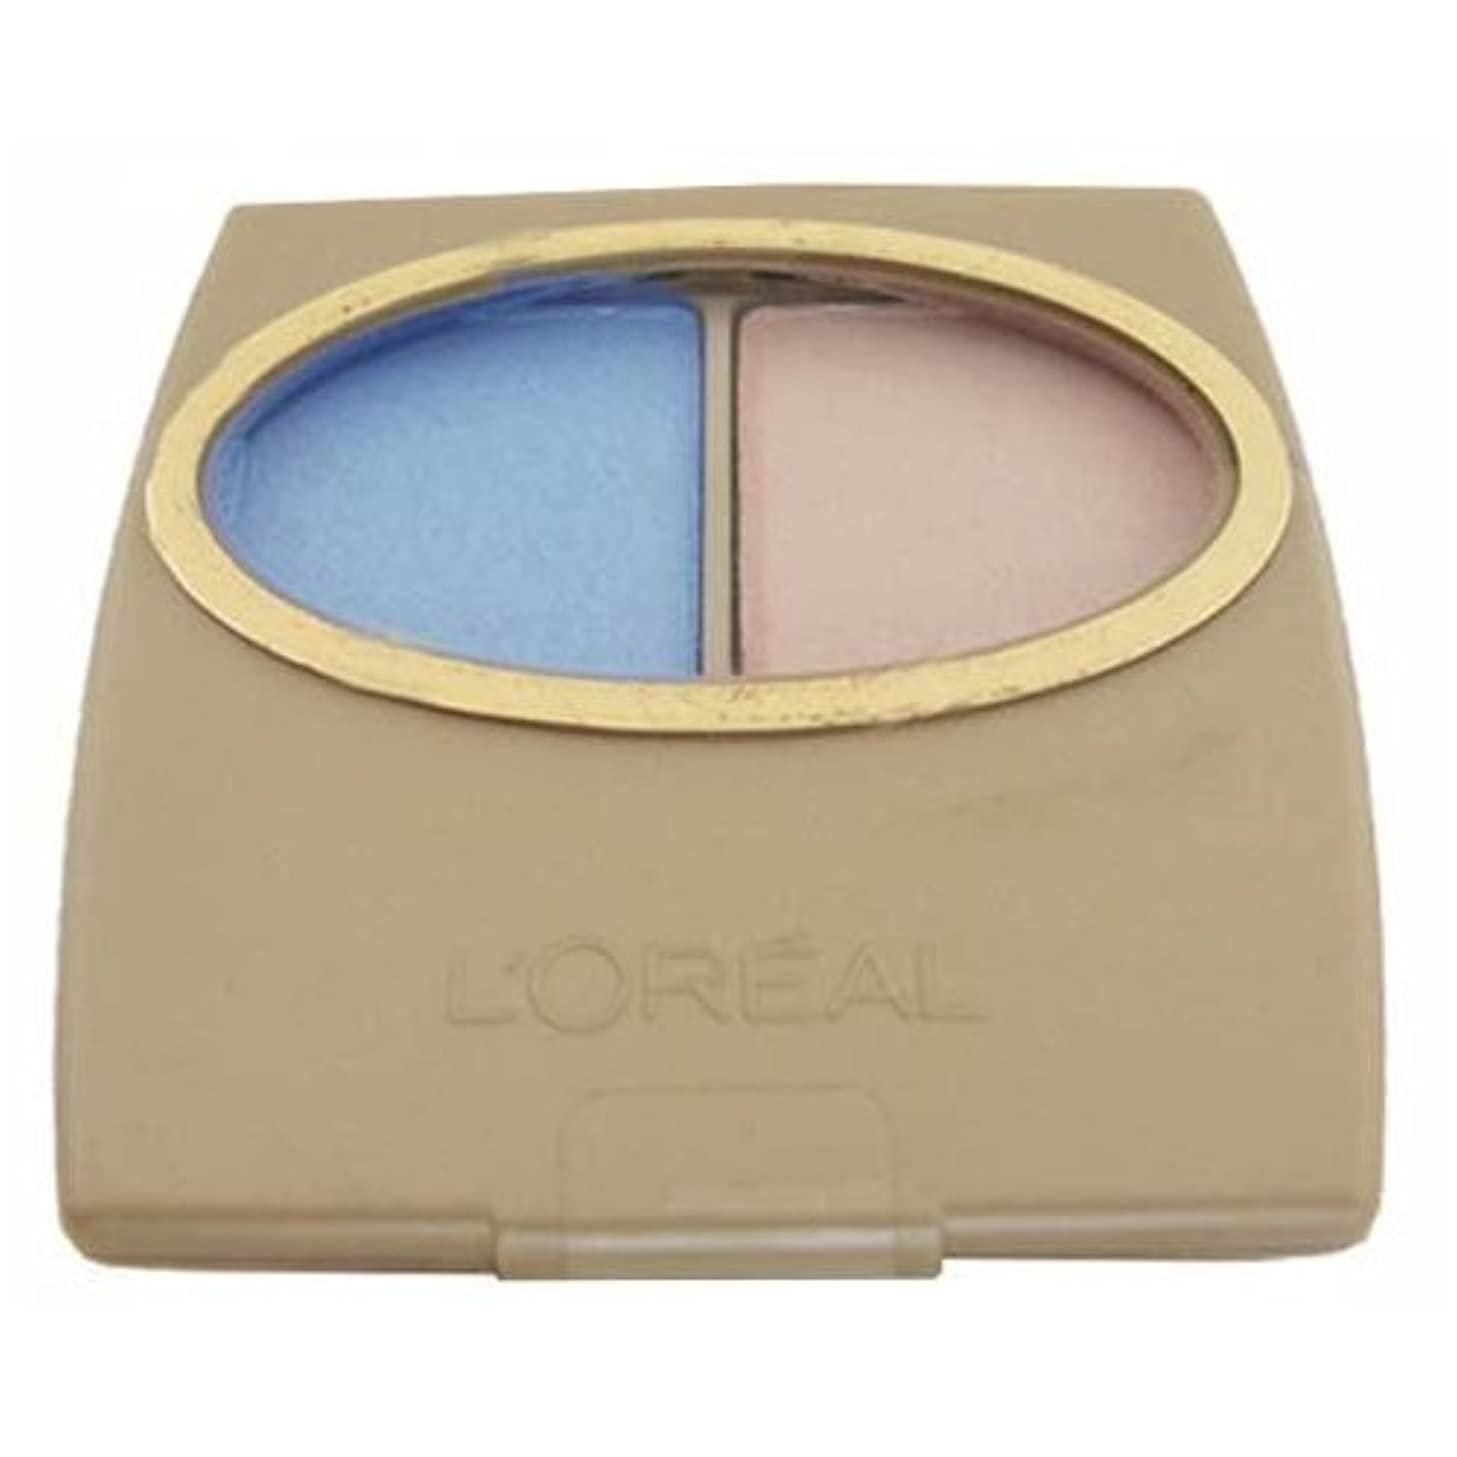 L'Oreal Eye Shadow Duo in Cotton Candy